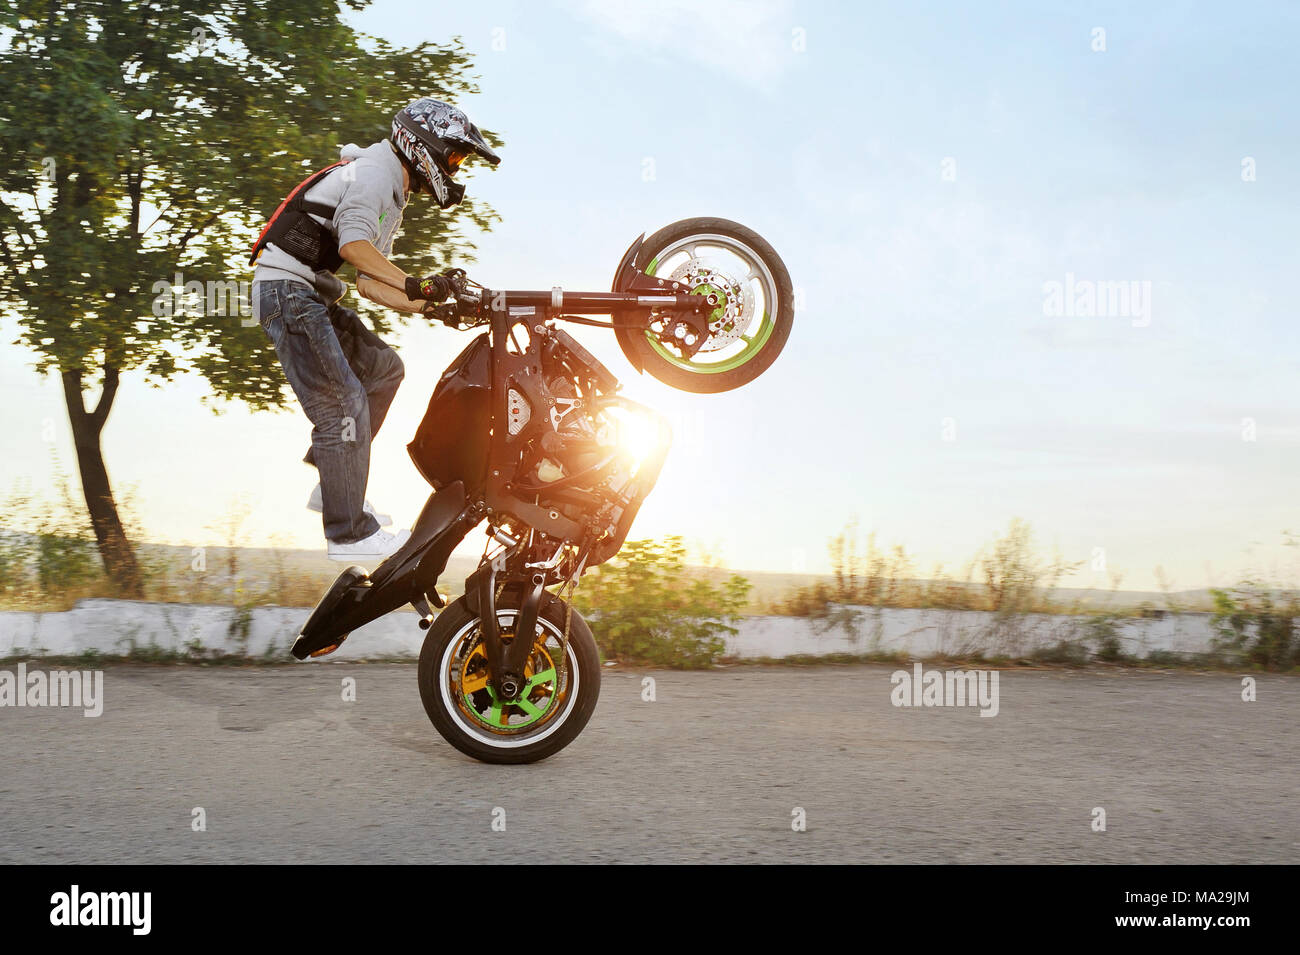 Ivano-Frankivsk, Ukraine - 28 August 2015 : colorful sideview of extreme impressing stunt driver is jumping on his sport motorcycle while riding in extreme way. Summer sunny evening. Stock Photo